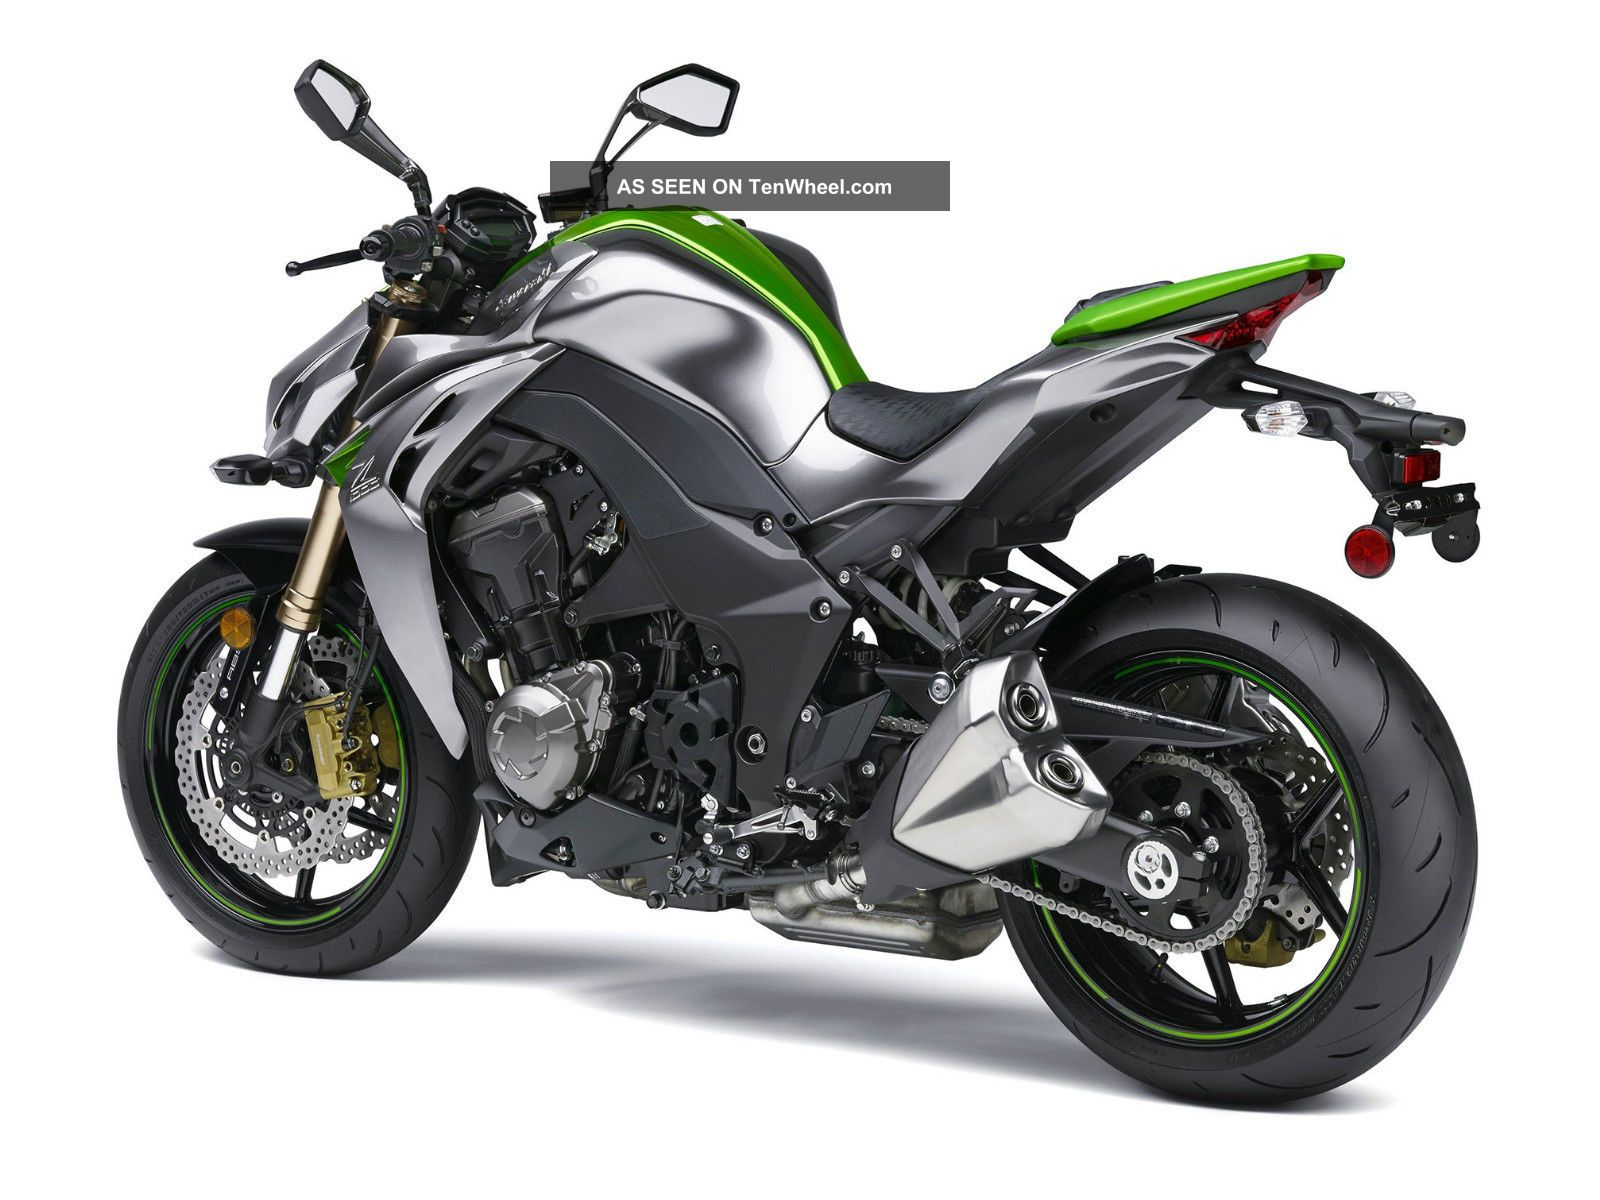 Bmw Zr1000 2014 Kawasaki Z1000 So Much Sugomi Asphalt